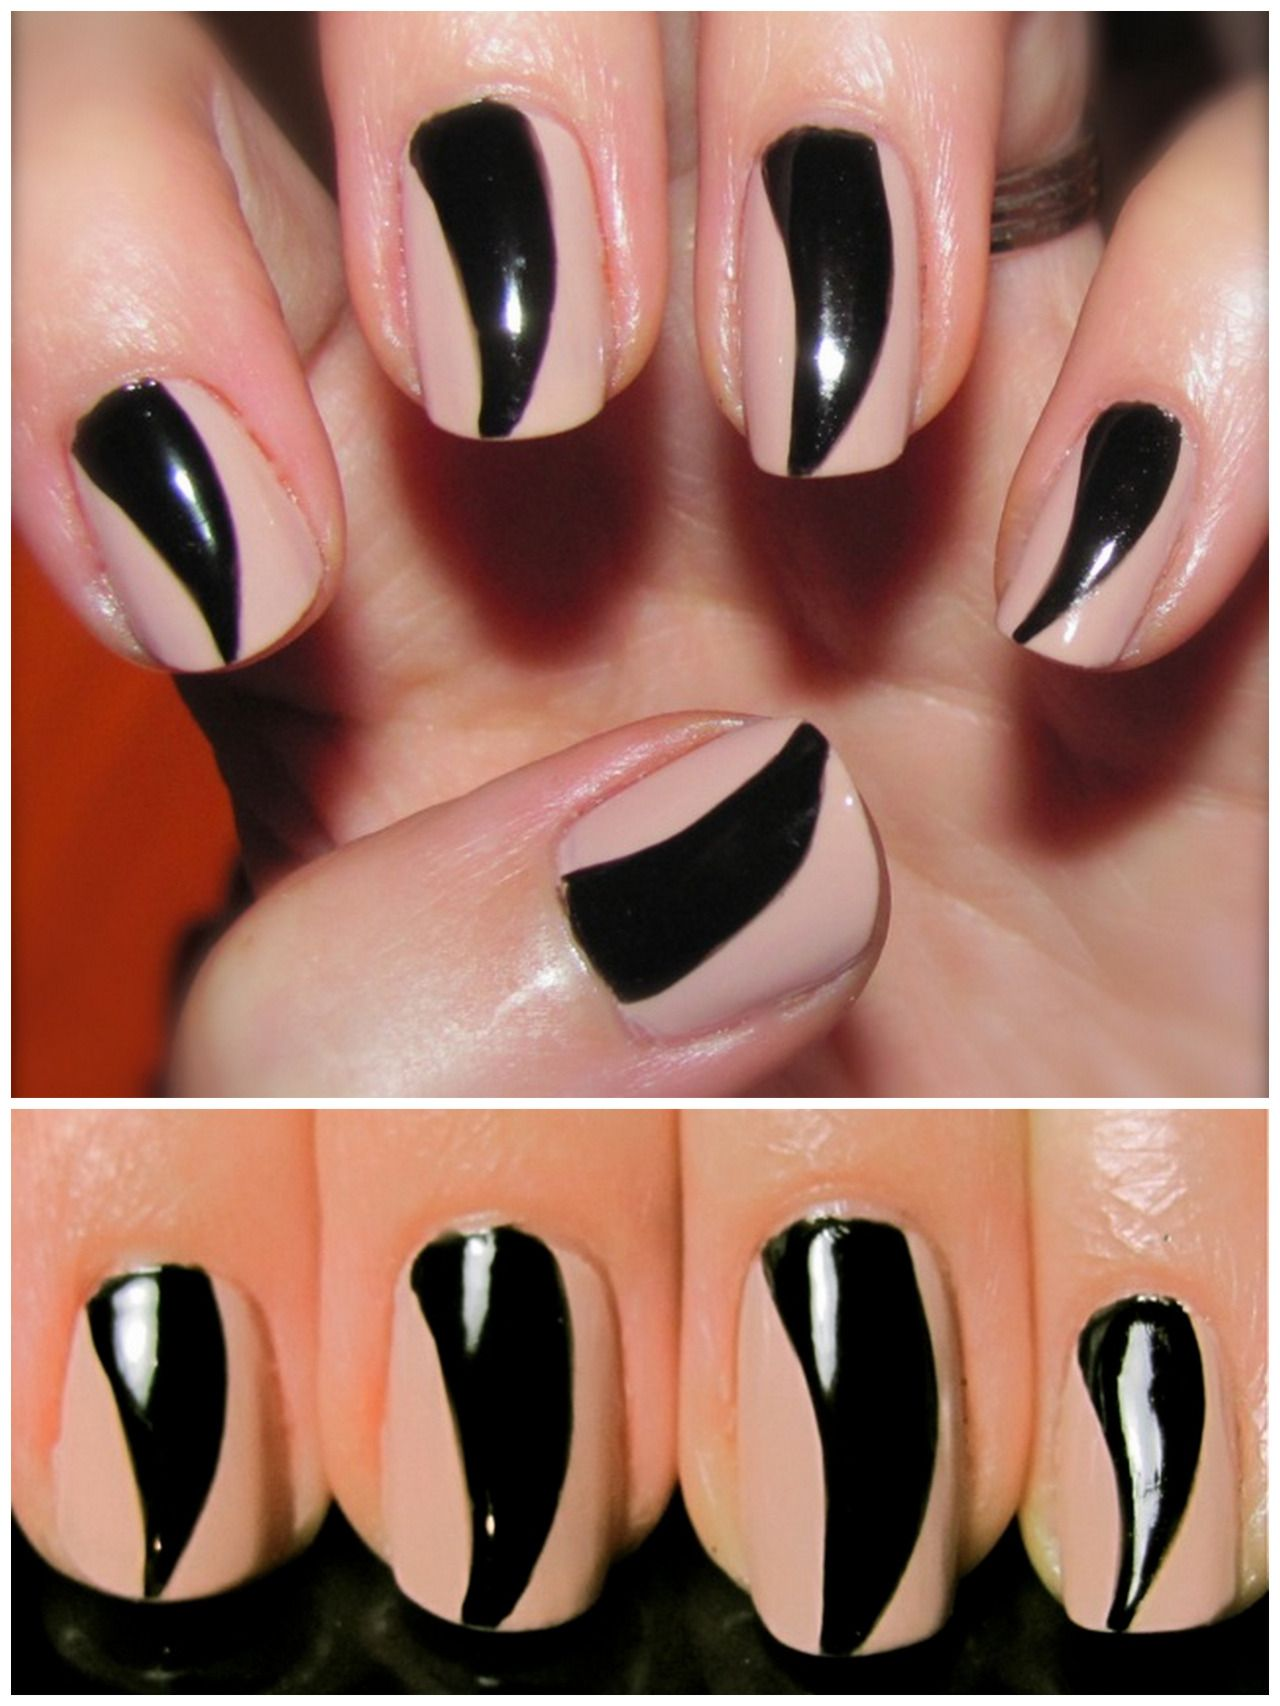 DIY Halloween Claw Nail Art by iPolished.For all the polishes used on these nails, go to the link. For more claw inspired nails, check out these DIY Claw Nails by honeymunchkin at beautylish here. If you want real-ish claws, then watch this video...